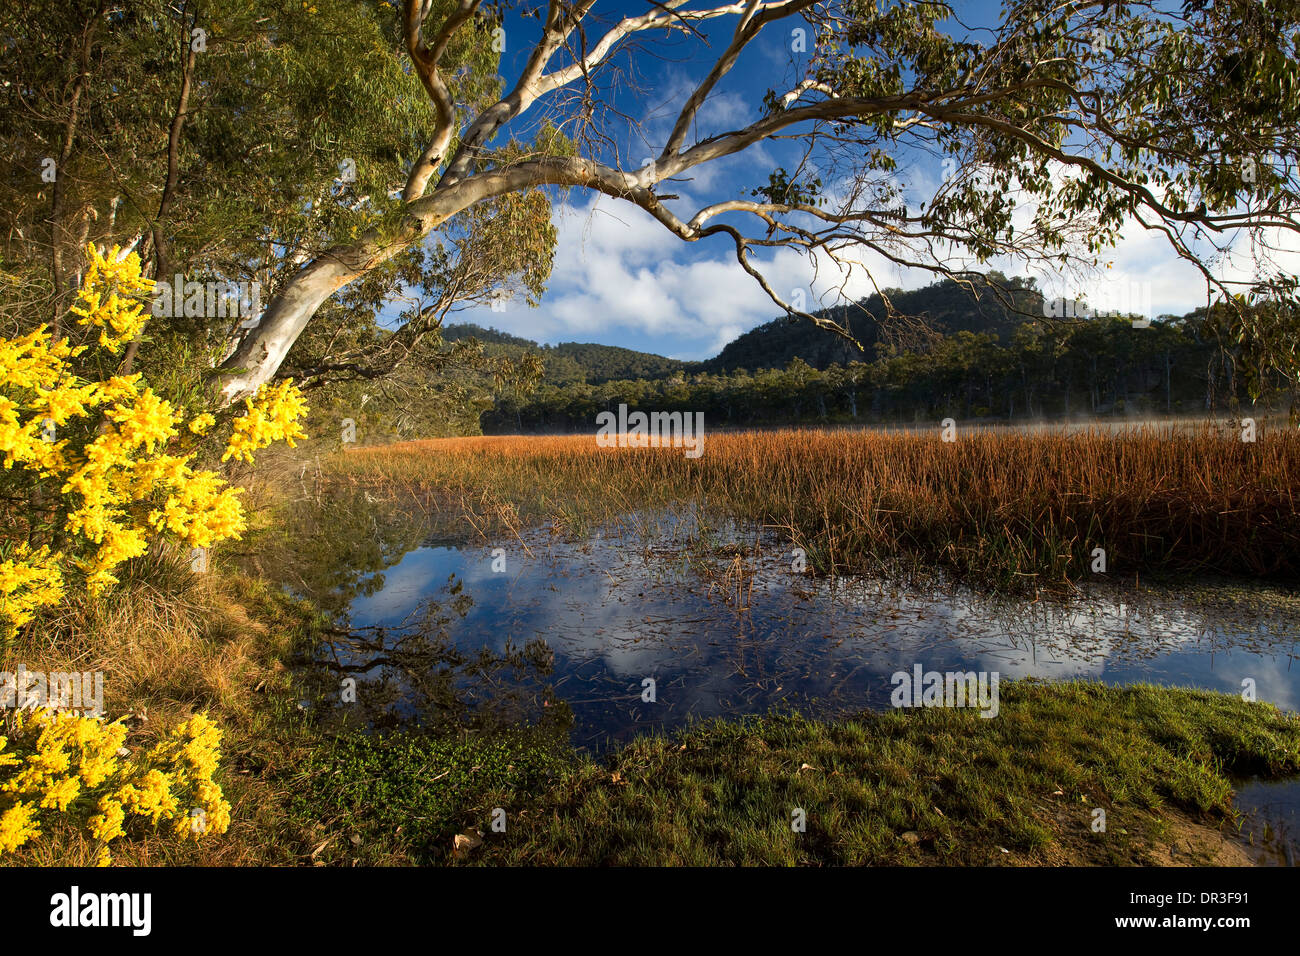 Spectacular landscape with blue lake and wetlands edged with wildflowers at Dunn's Swamp  Wollemi National Park NSW Australia - Stock Image